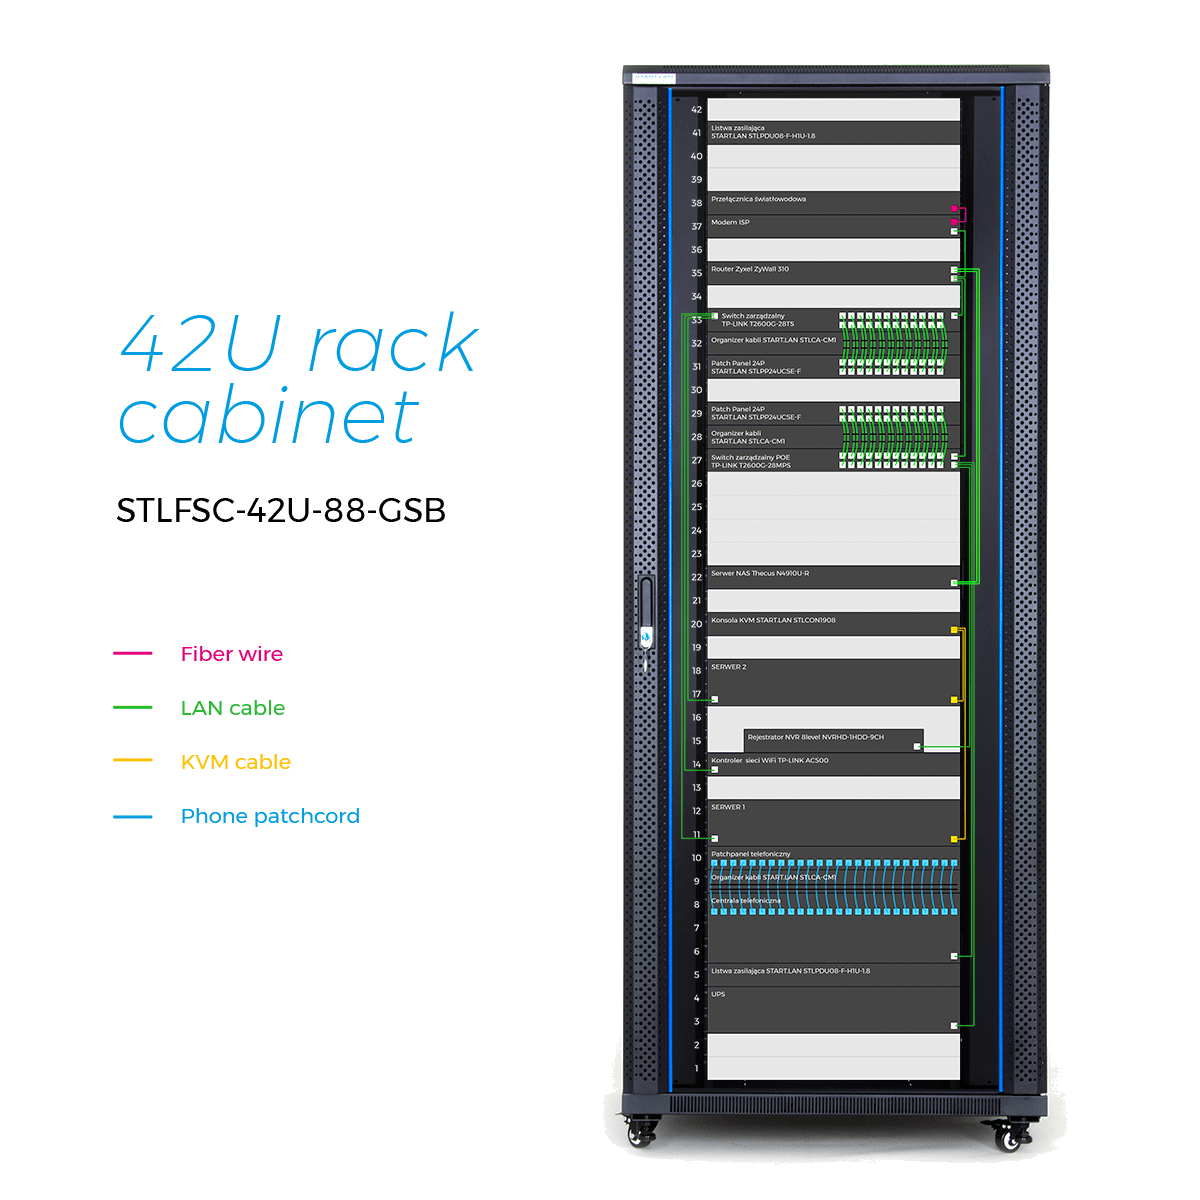 "Design of 19 ""42U rack cabinet equipment for a small business server room (up to 48 ports, including monitoring installation)."